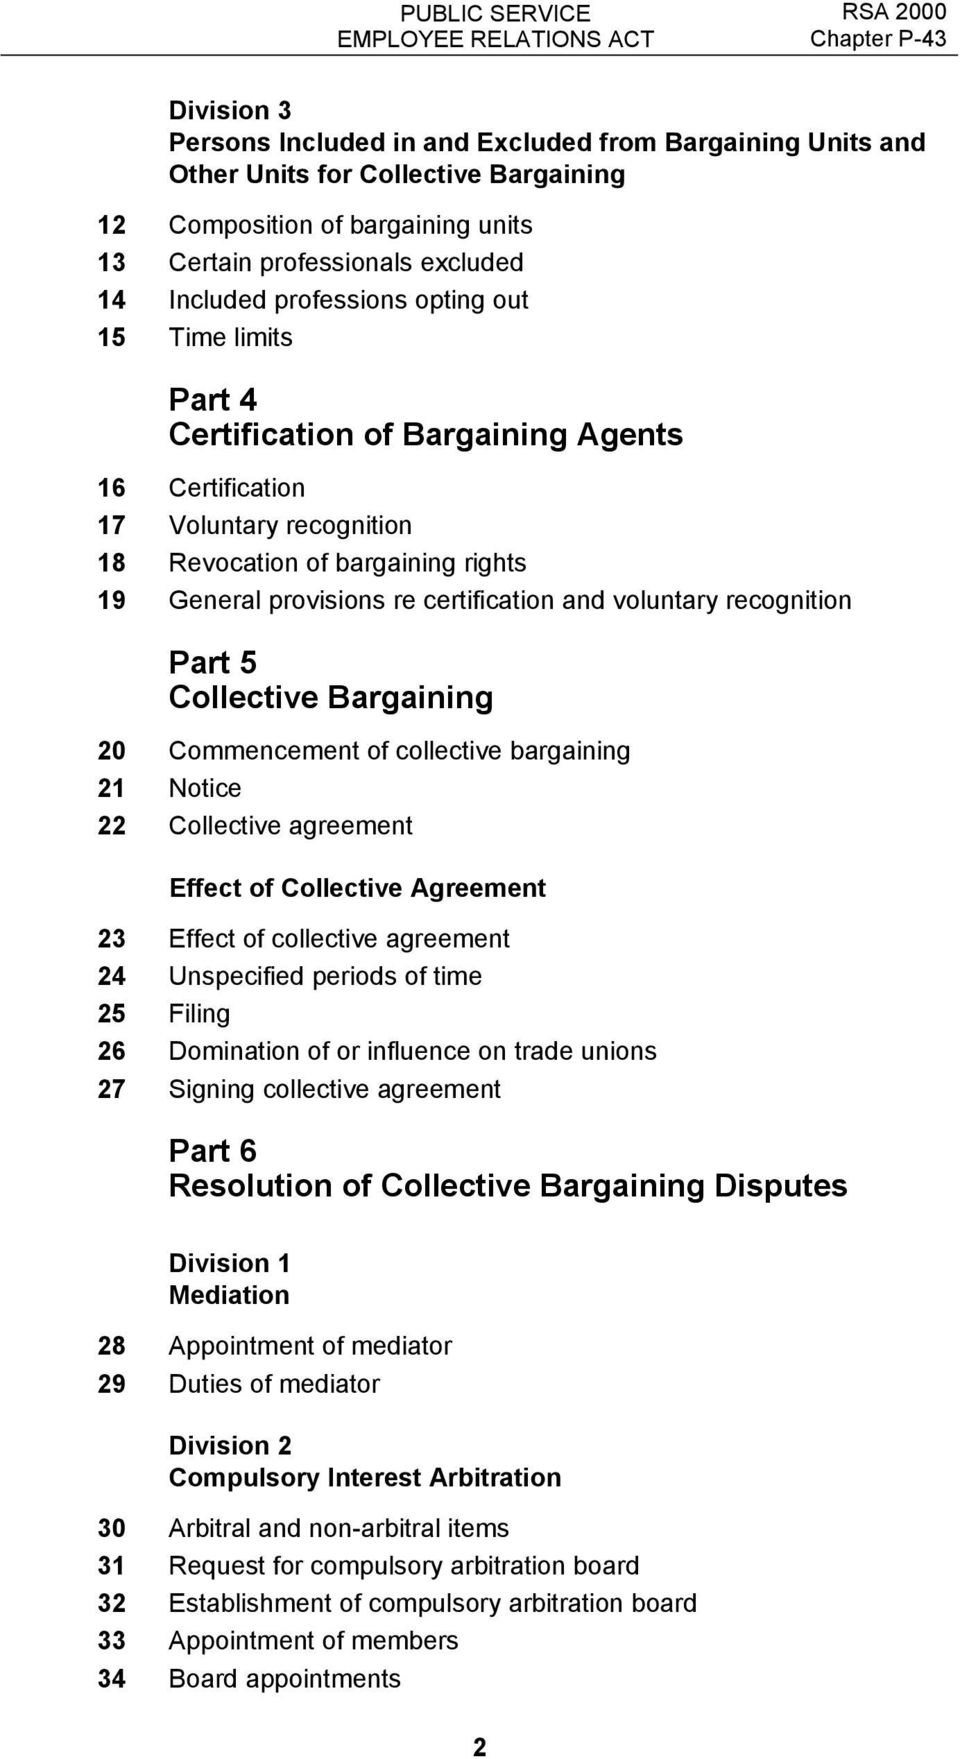 certification and voluntary recognition Part 5 Collective Bargaining 20 Commencement of collective bargaining 21 Notice 22 Collective agreement Effect of Collective Agreement 23 Effect of collective